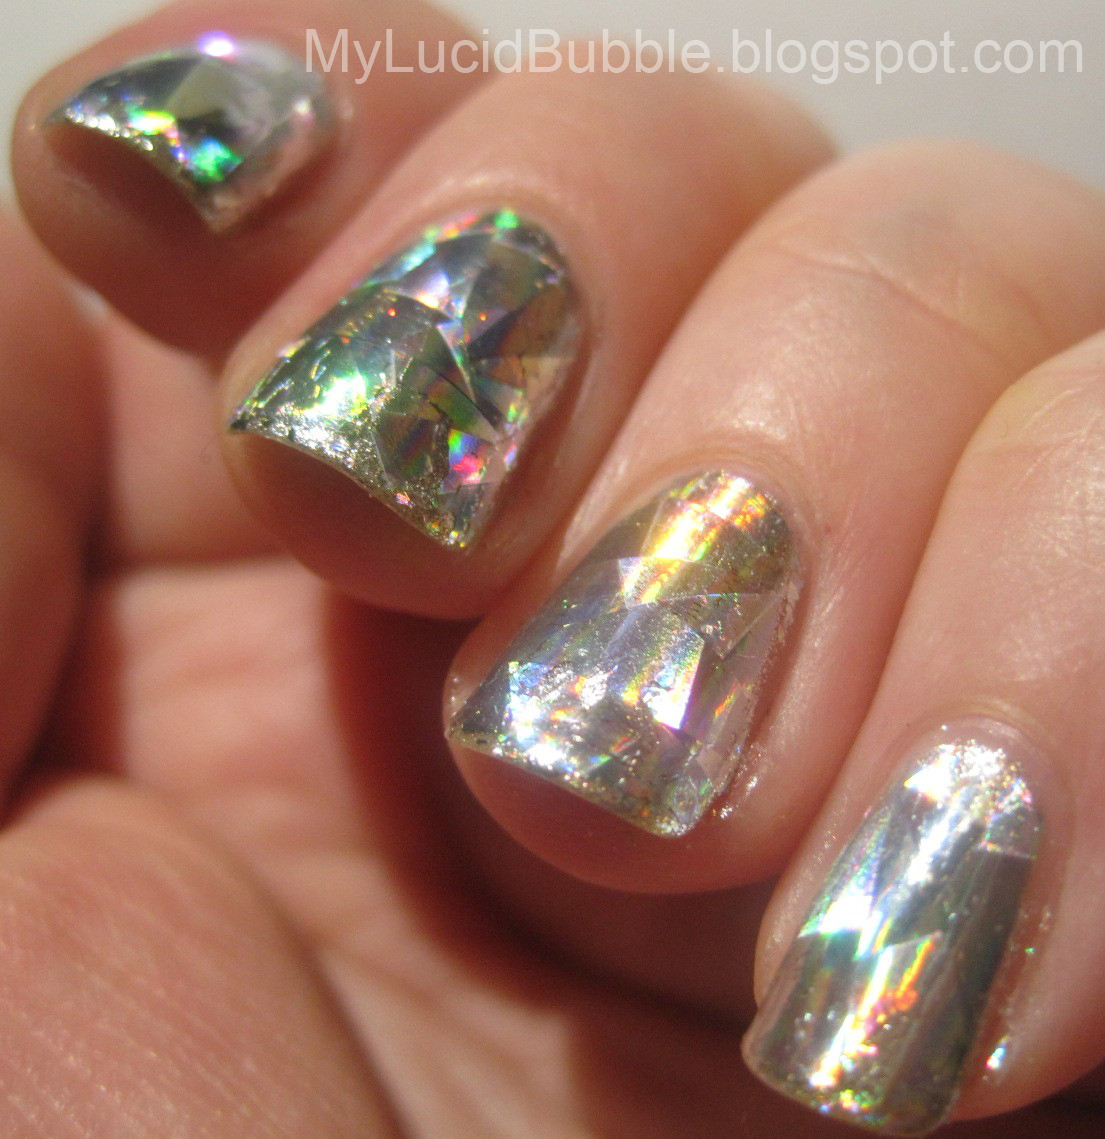 A Topcoat (That Works!) For Nail Foils | My Lucid Bubble